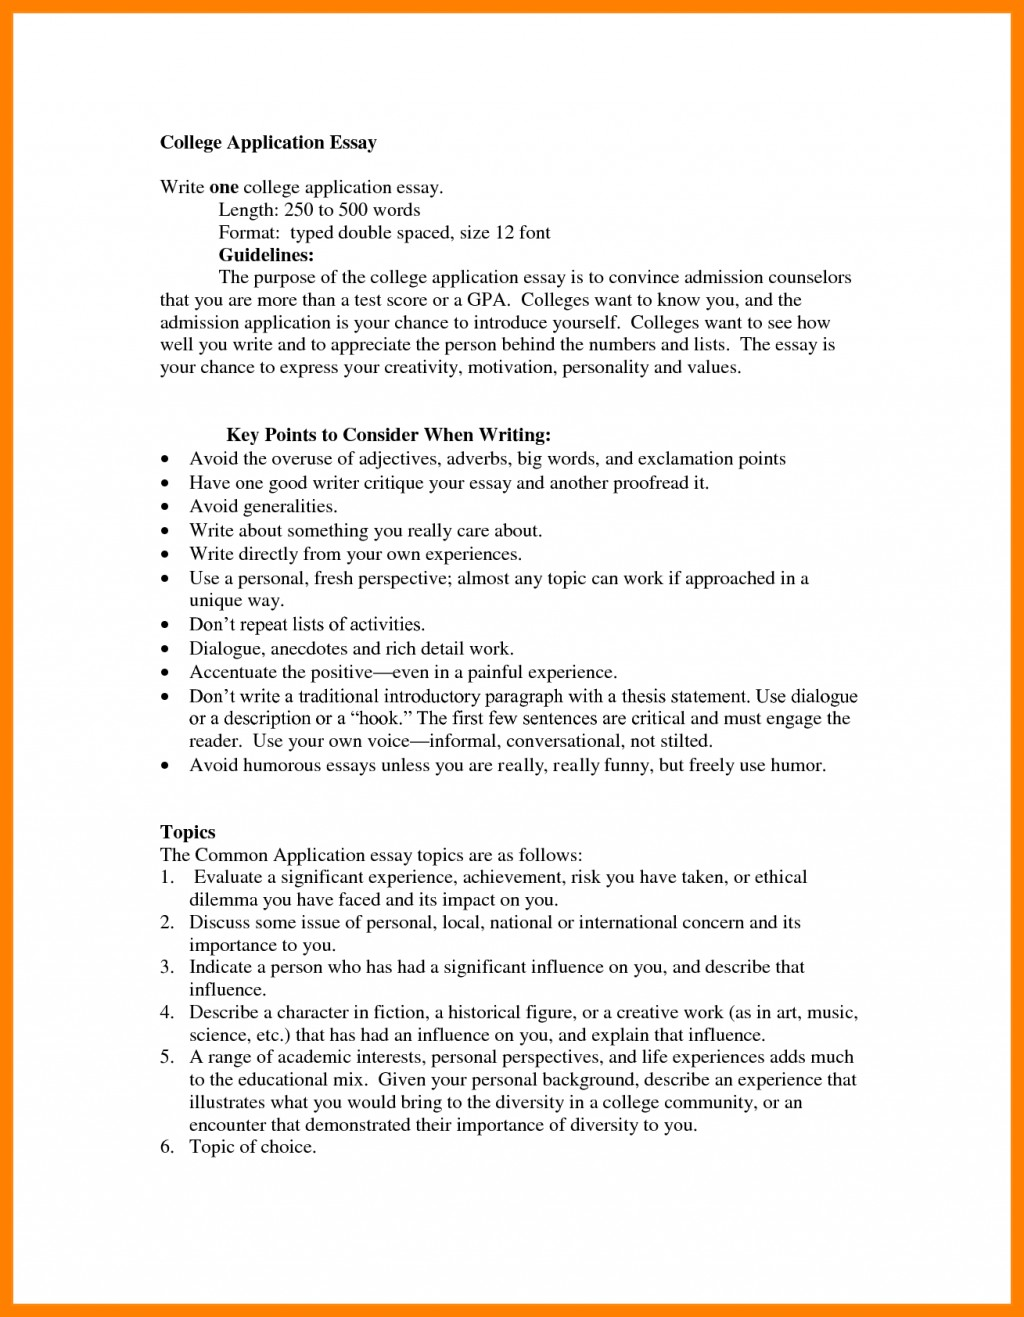 007 Essay Example Format Of College Application Template Com Admission Guidelines Sample Heading Mla How Stupendous To A Should I My Write Common App Large